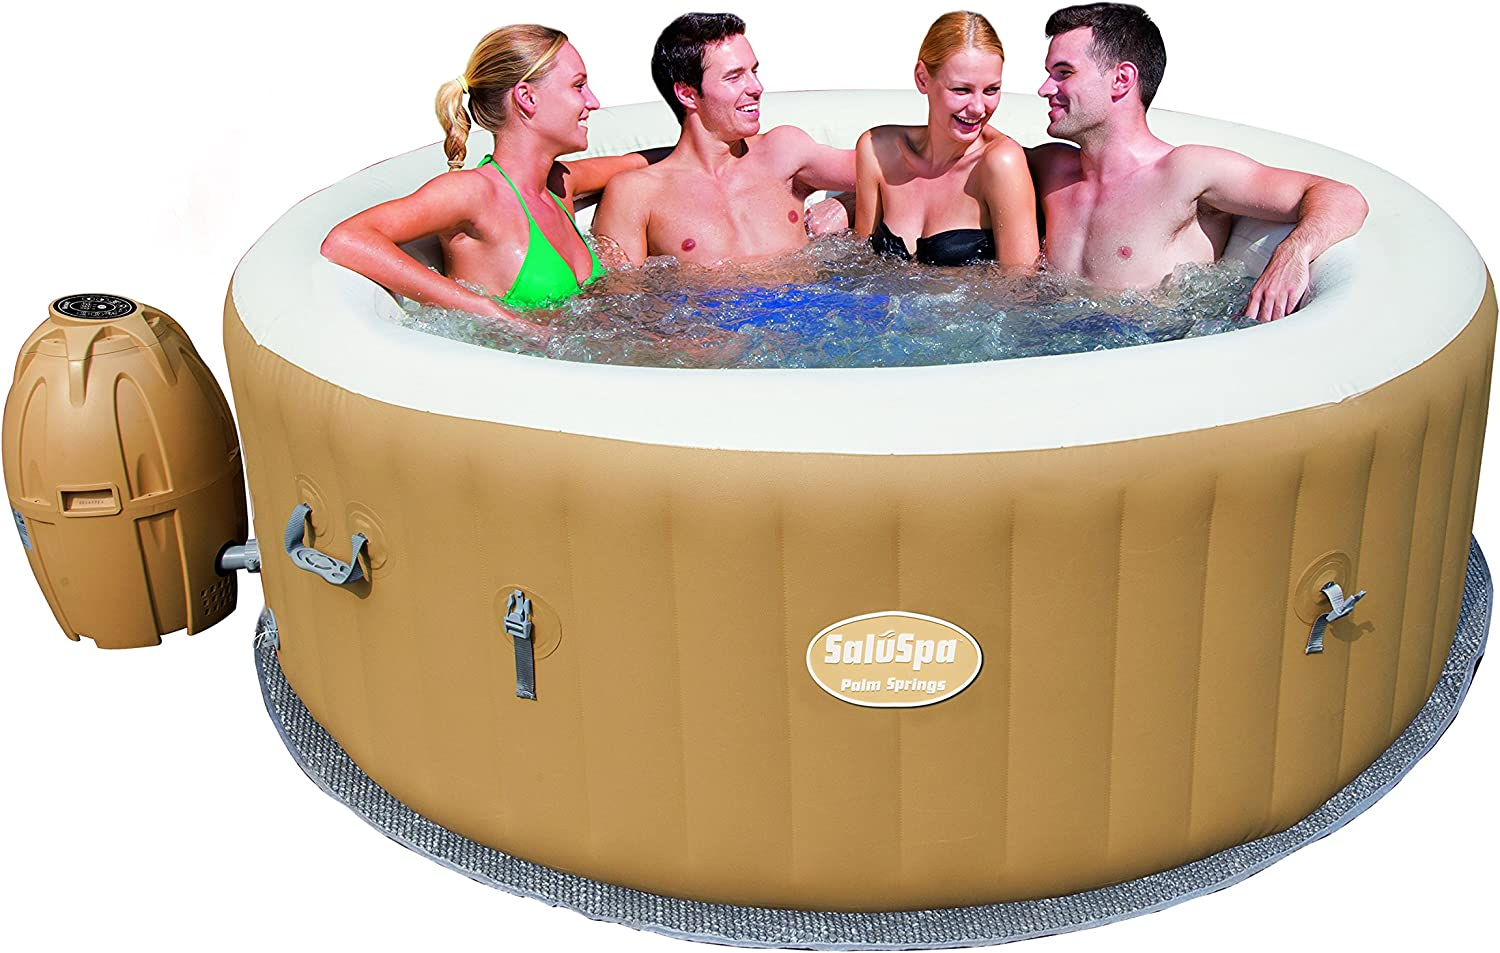 Best way Hot Tub, Palm Springs- Cheap Hot Tubs